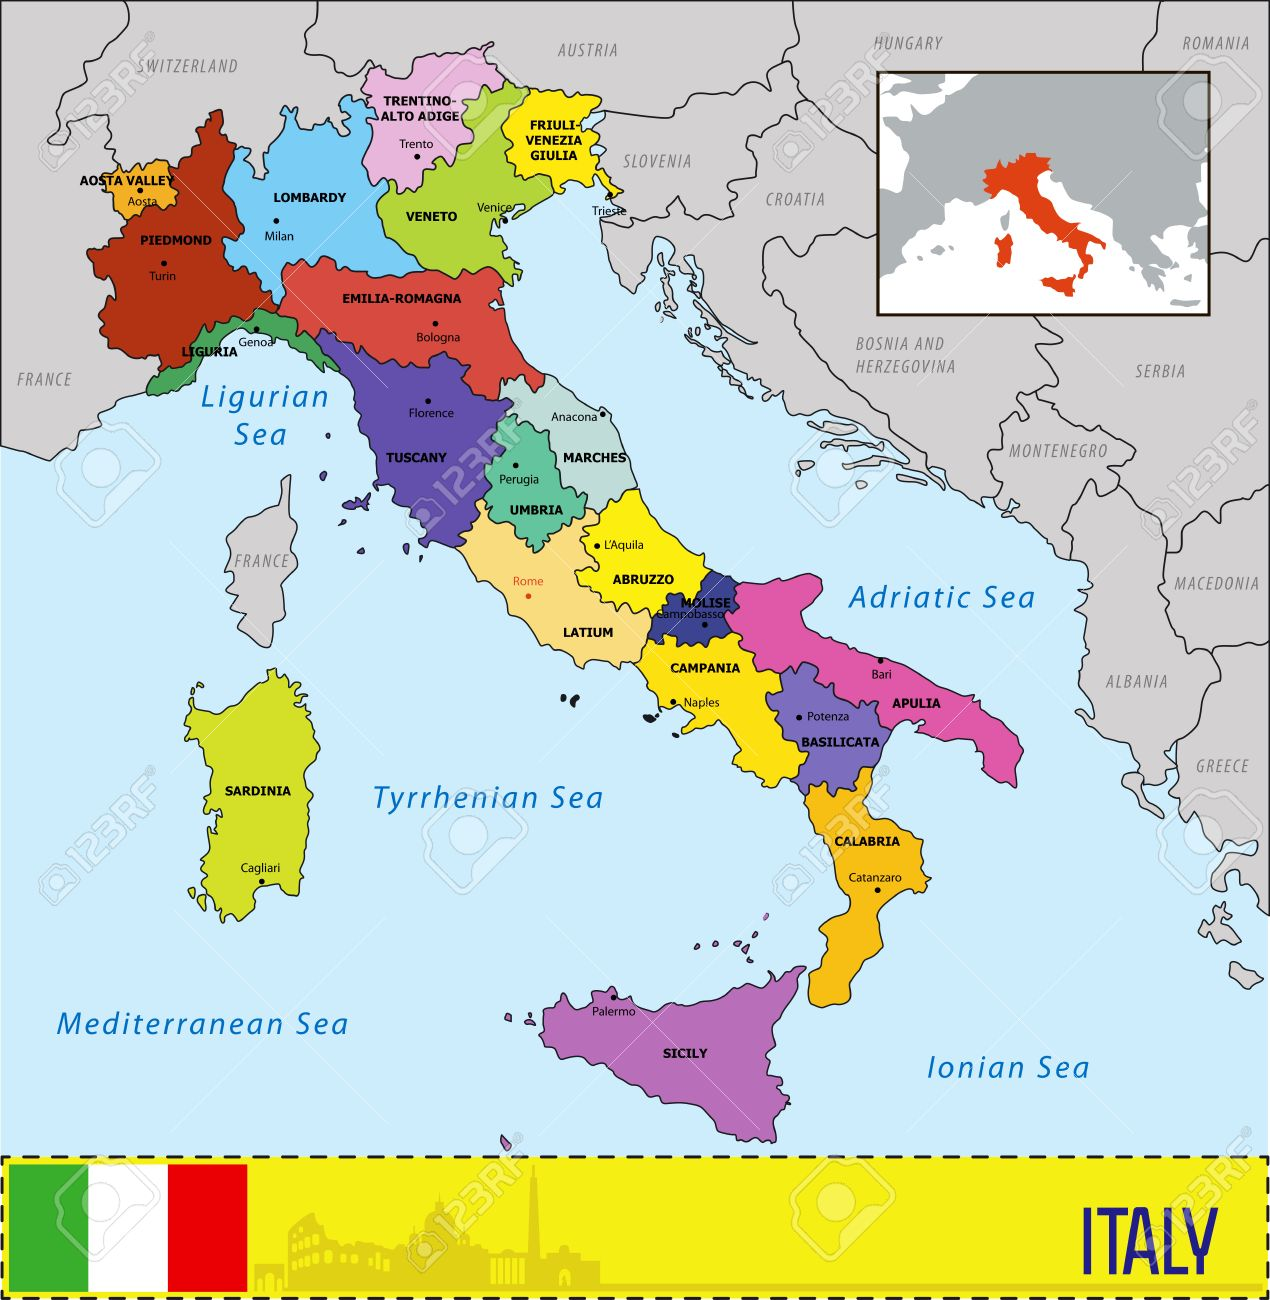 Map Of Italy With Regions And Their Capitals Royalty Free Cliparts